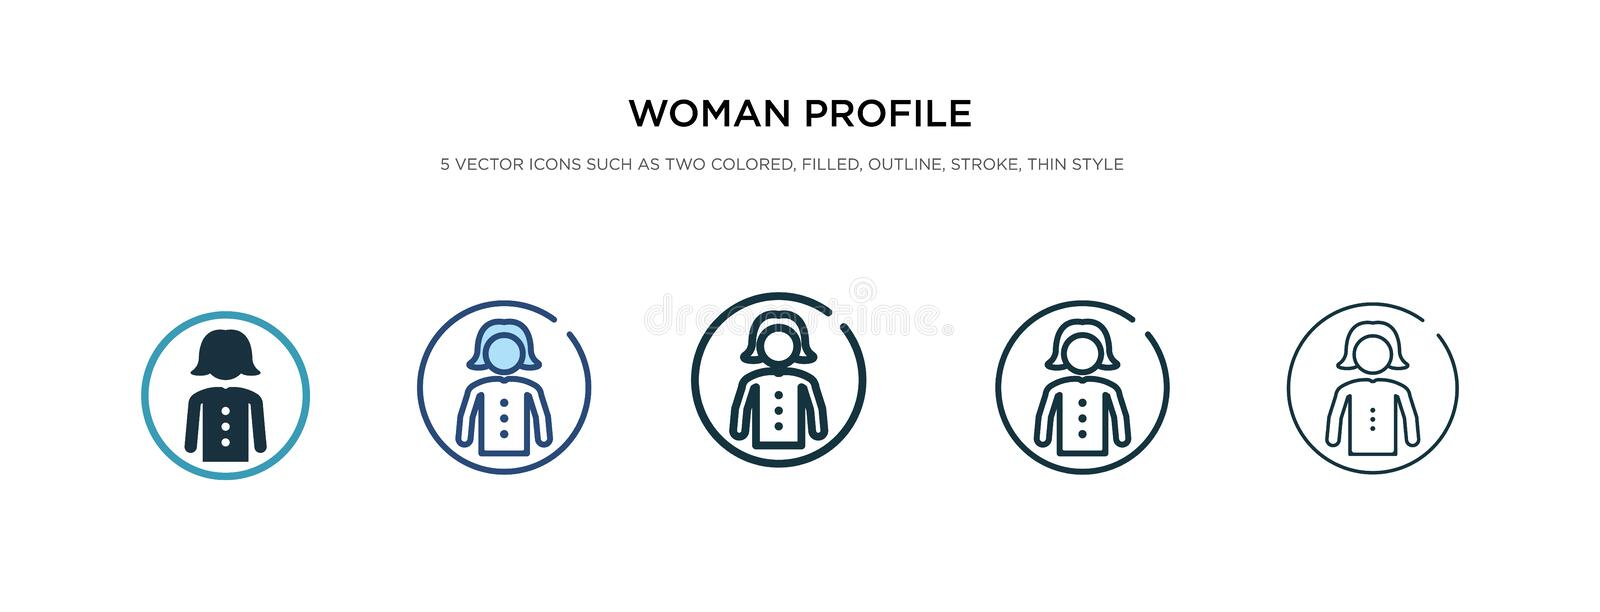 Woman profile icon in different style vector illustration. two colored and black woman profile vector icons designed in filled,. Outline, line and stroke style vector illustration